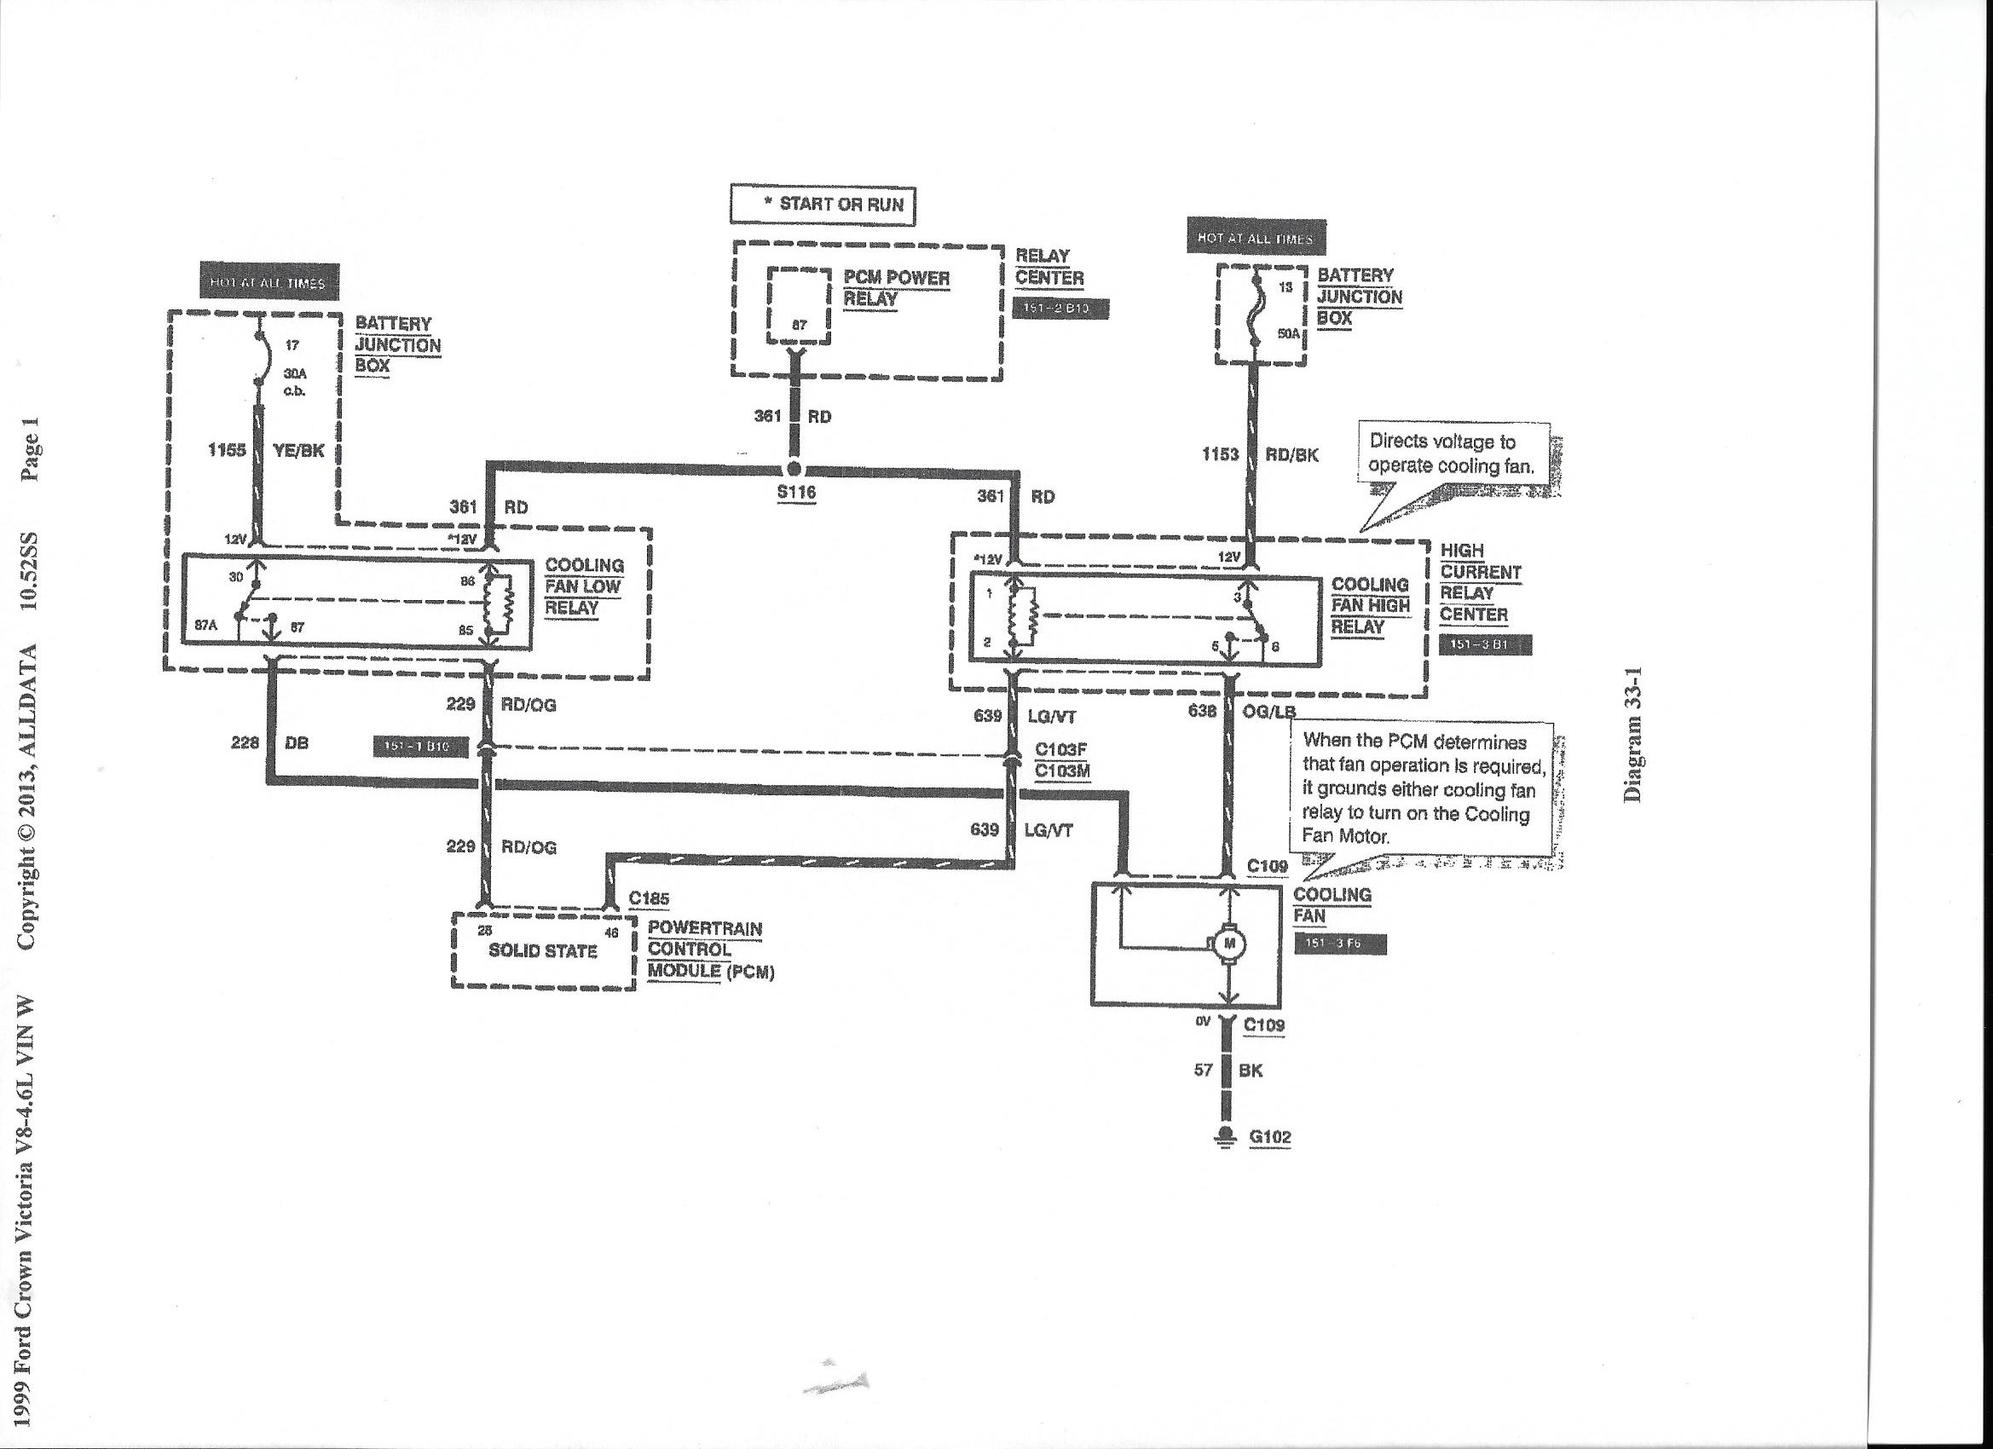 Chevy Trailblazer Hvac Diagram on 2005 Accord Fuse Box Diagram